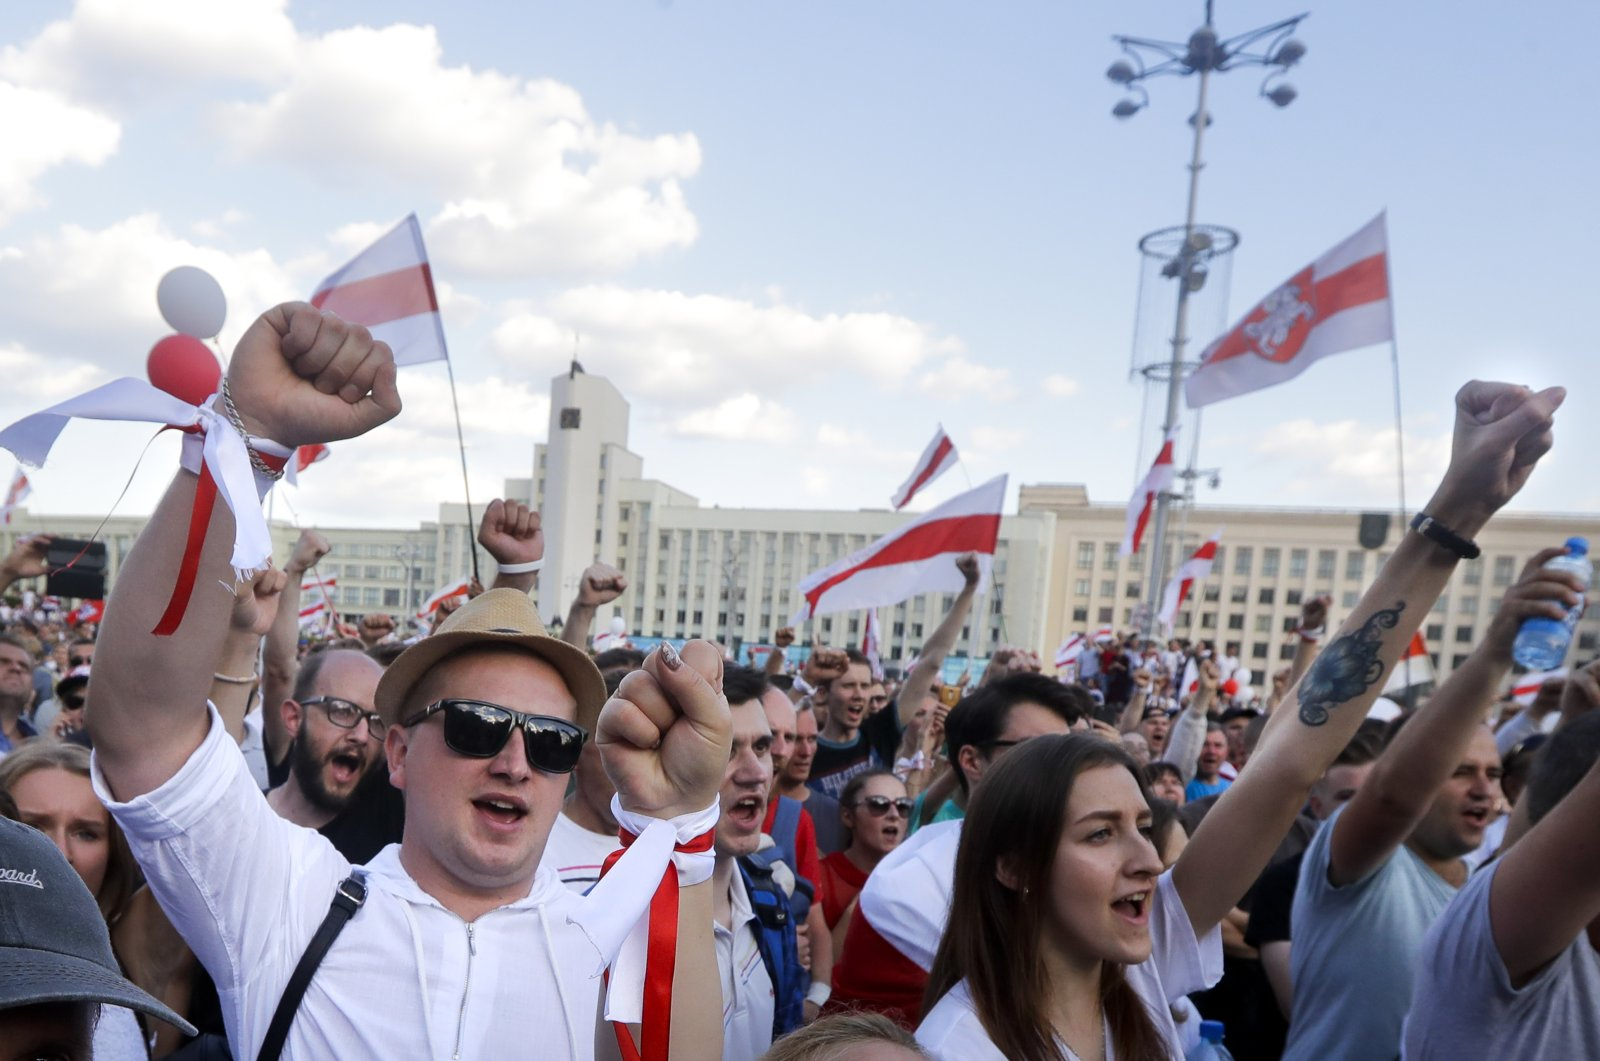 People with old Belarusian national flags shout during an opposition rally in front of the House of Government building in Minsk, Belarus, Aug. 16, 2020. (AP Photo)